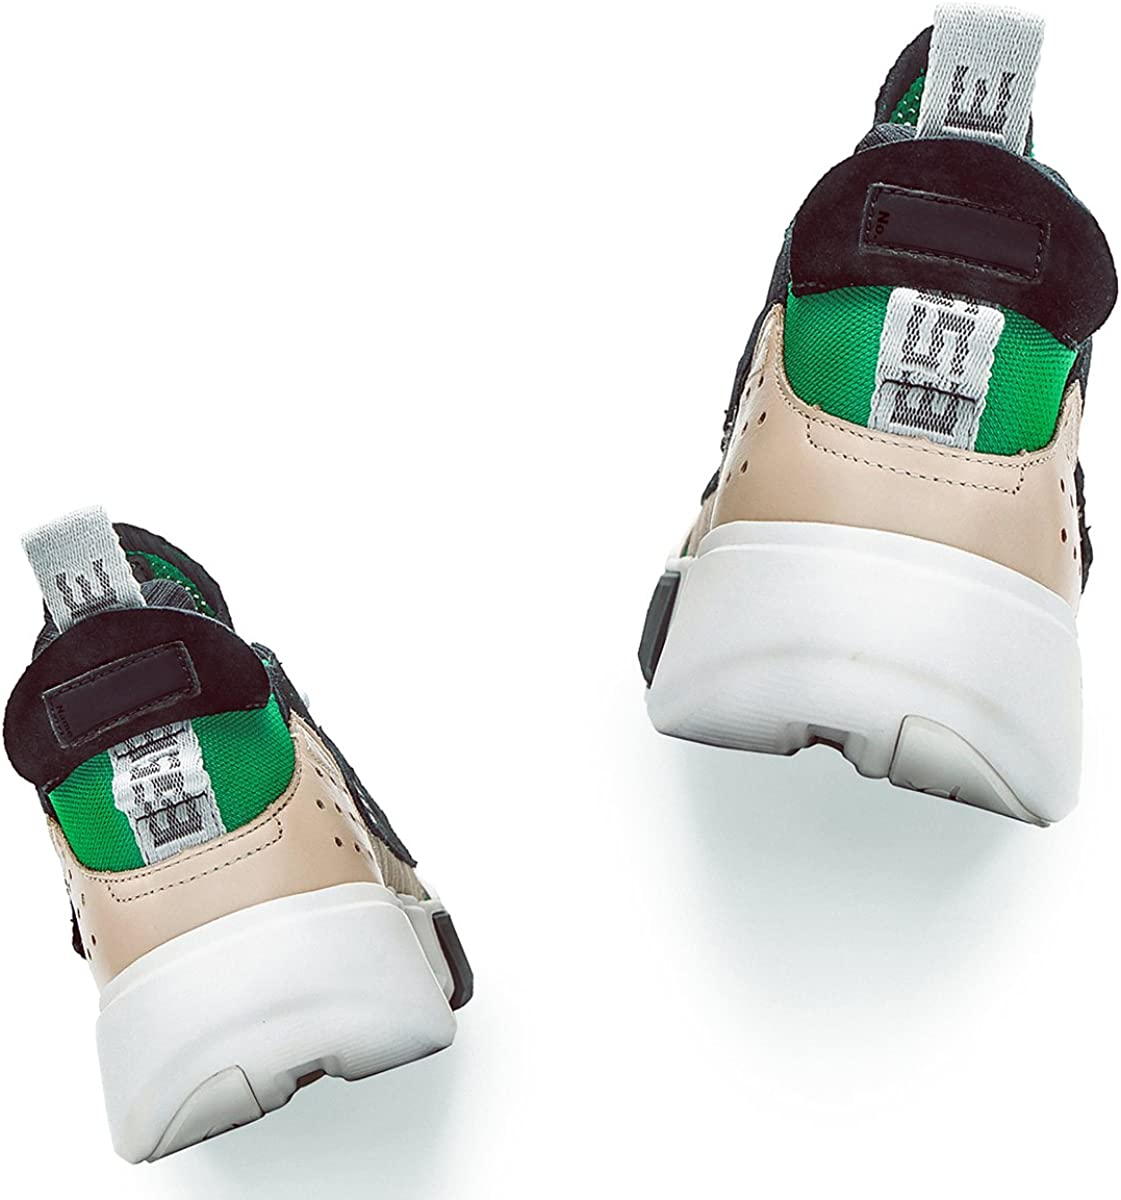 LI-NING FW Men Essence Wade Culture Shoes Genuine Leather Wearable Lining Sport Shoes Sneakers AGWP027 AGWN041 AGBN069 Green 2